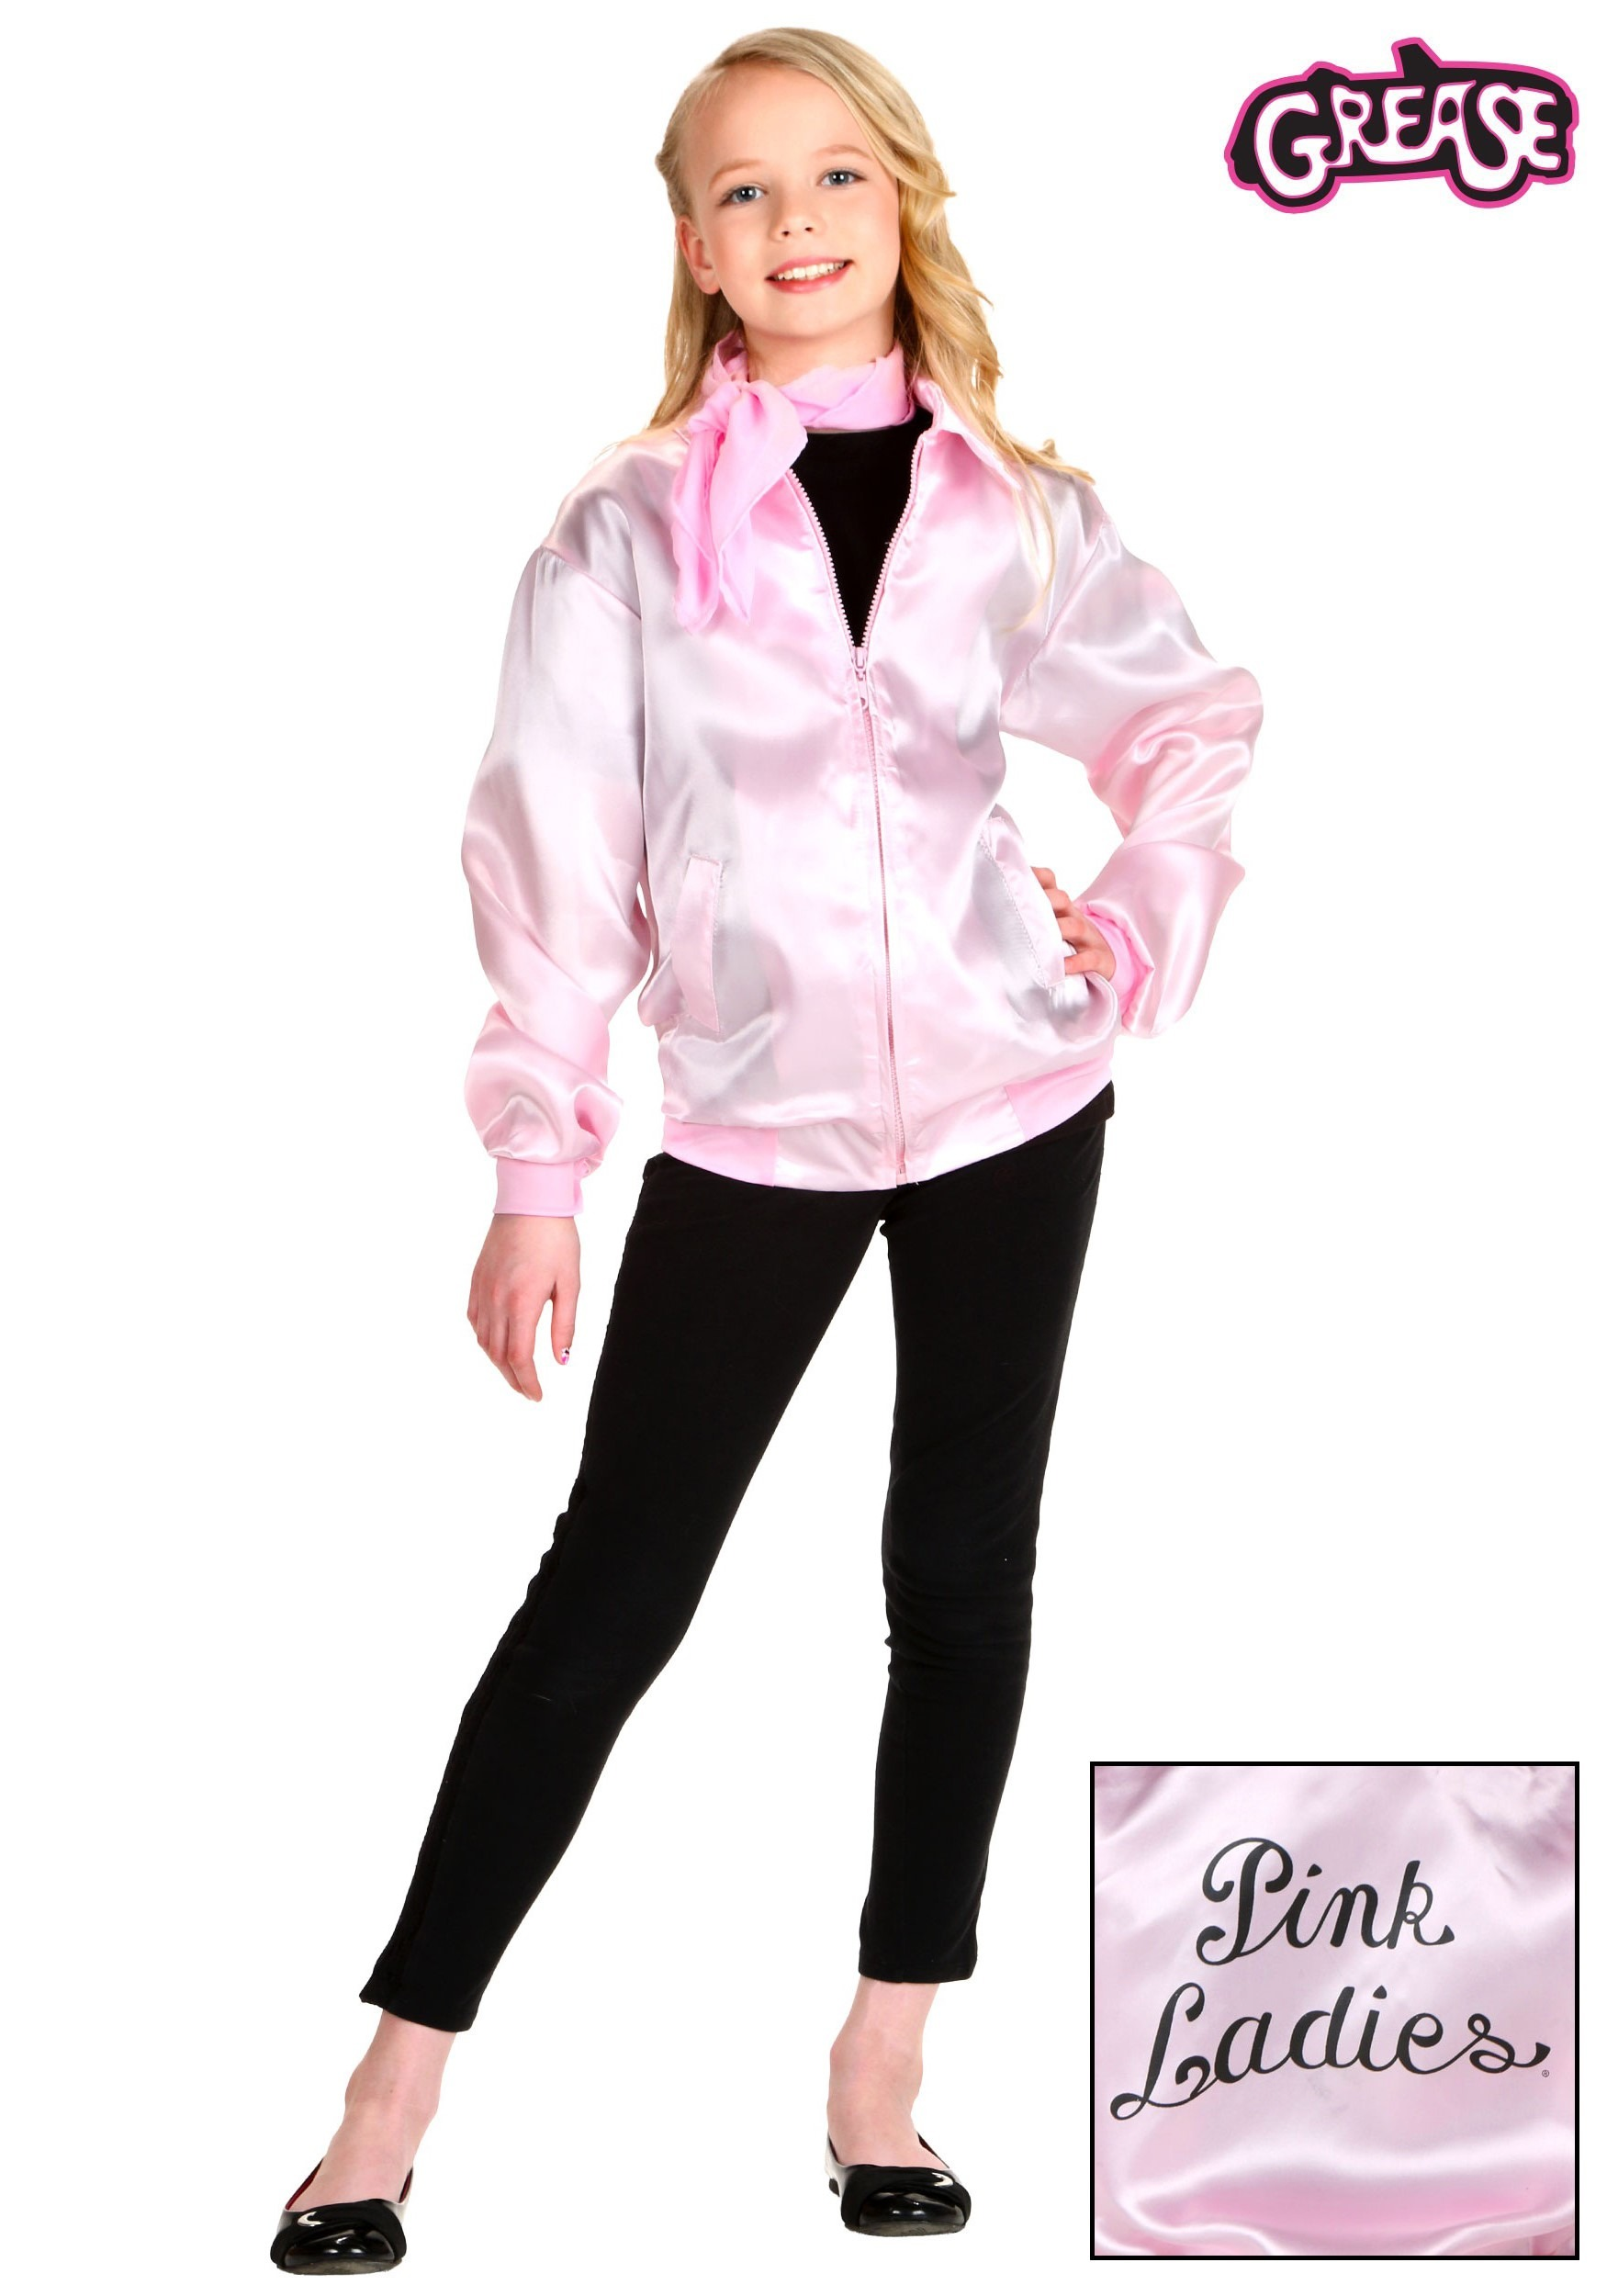 84d483614176 Kids Grease Pink Ladies Costume Jacket